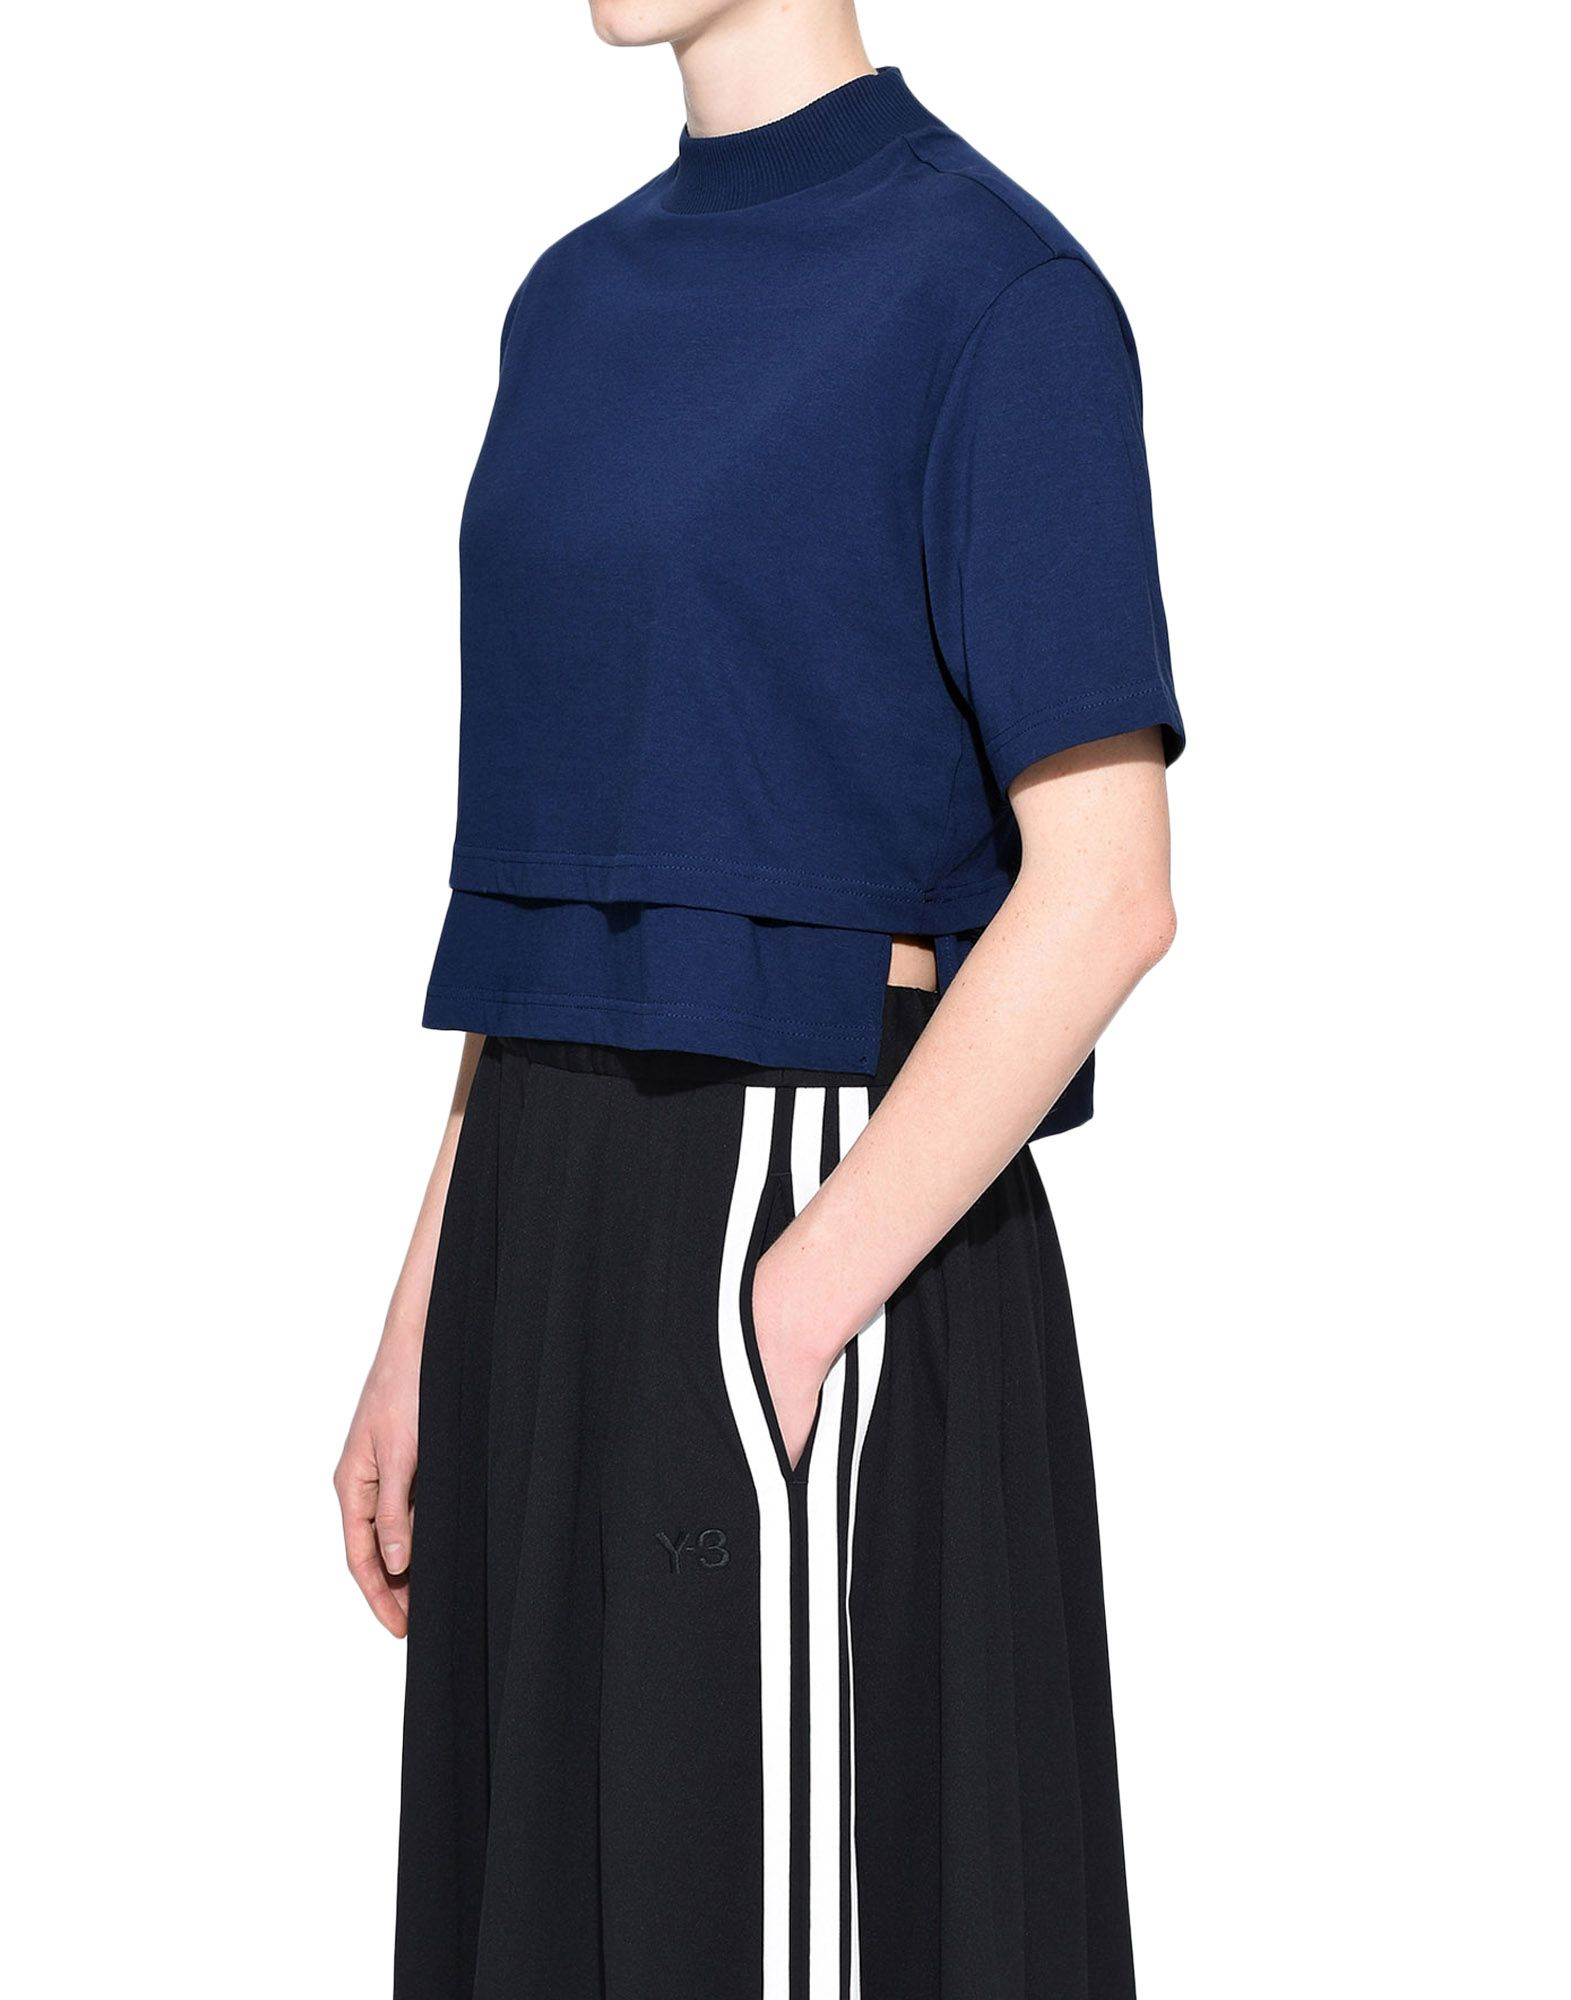 Y-3 Y-3 Stacked Logo Cropped Tee Short sleeve t-shirt Woman e